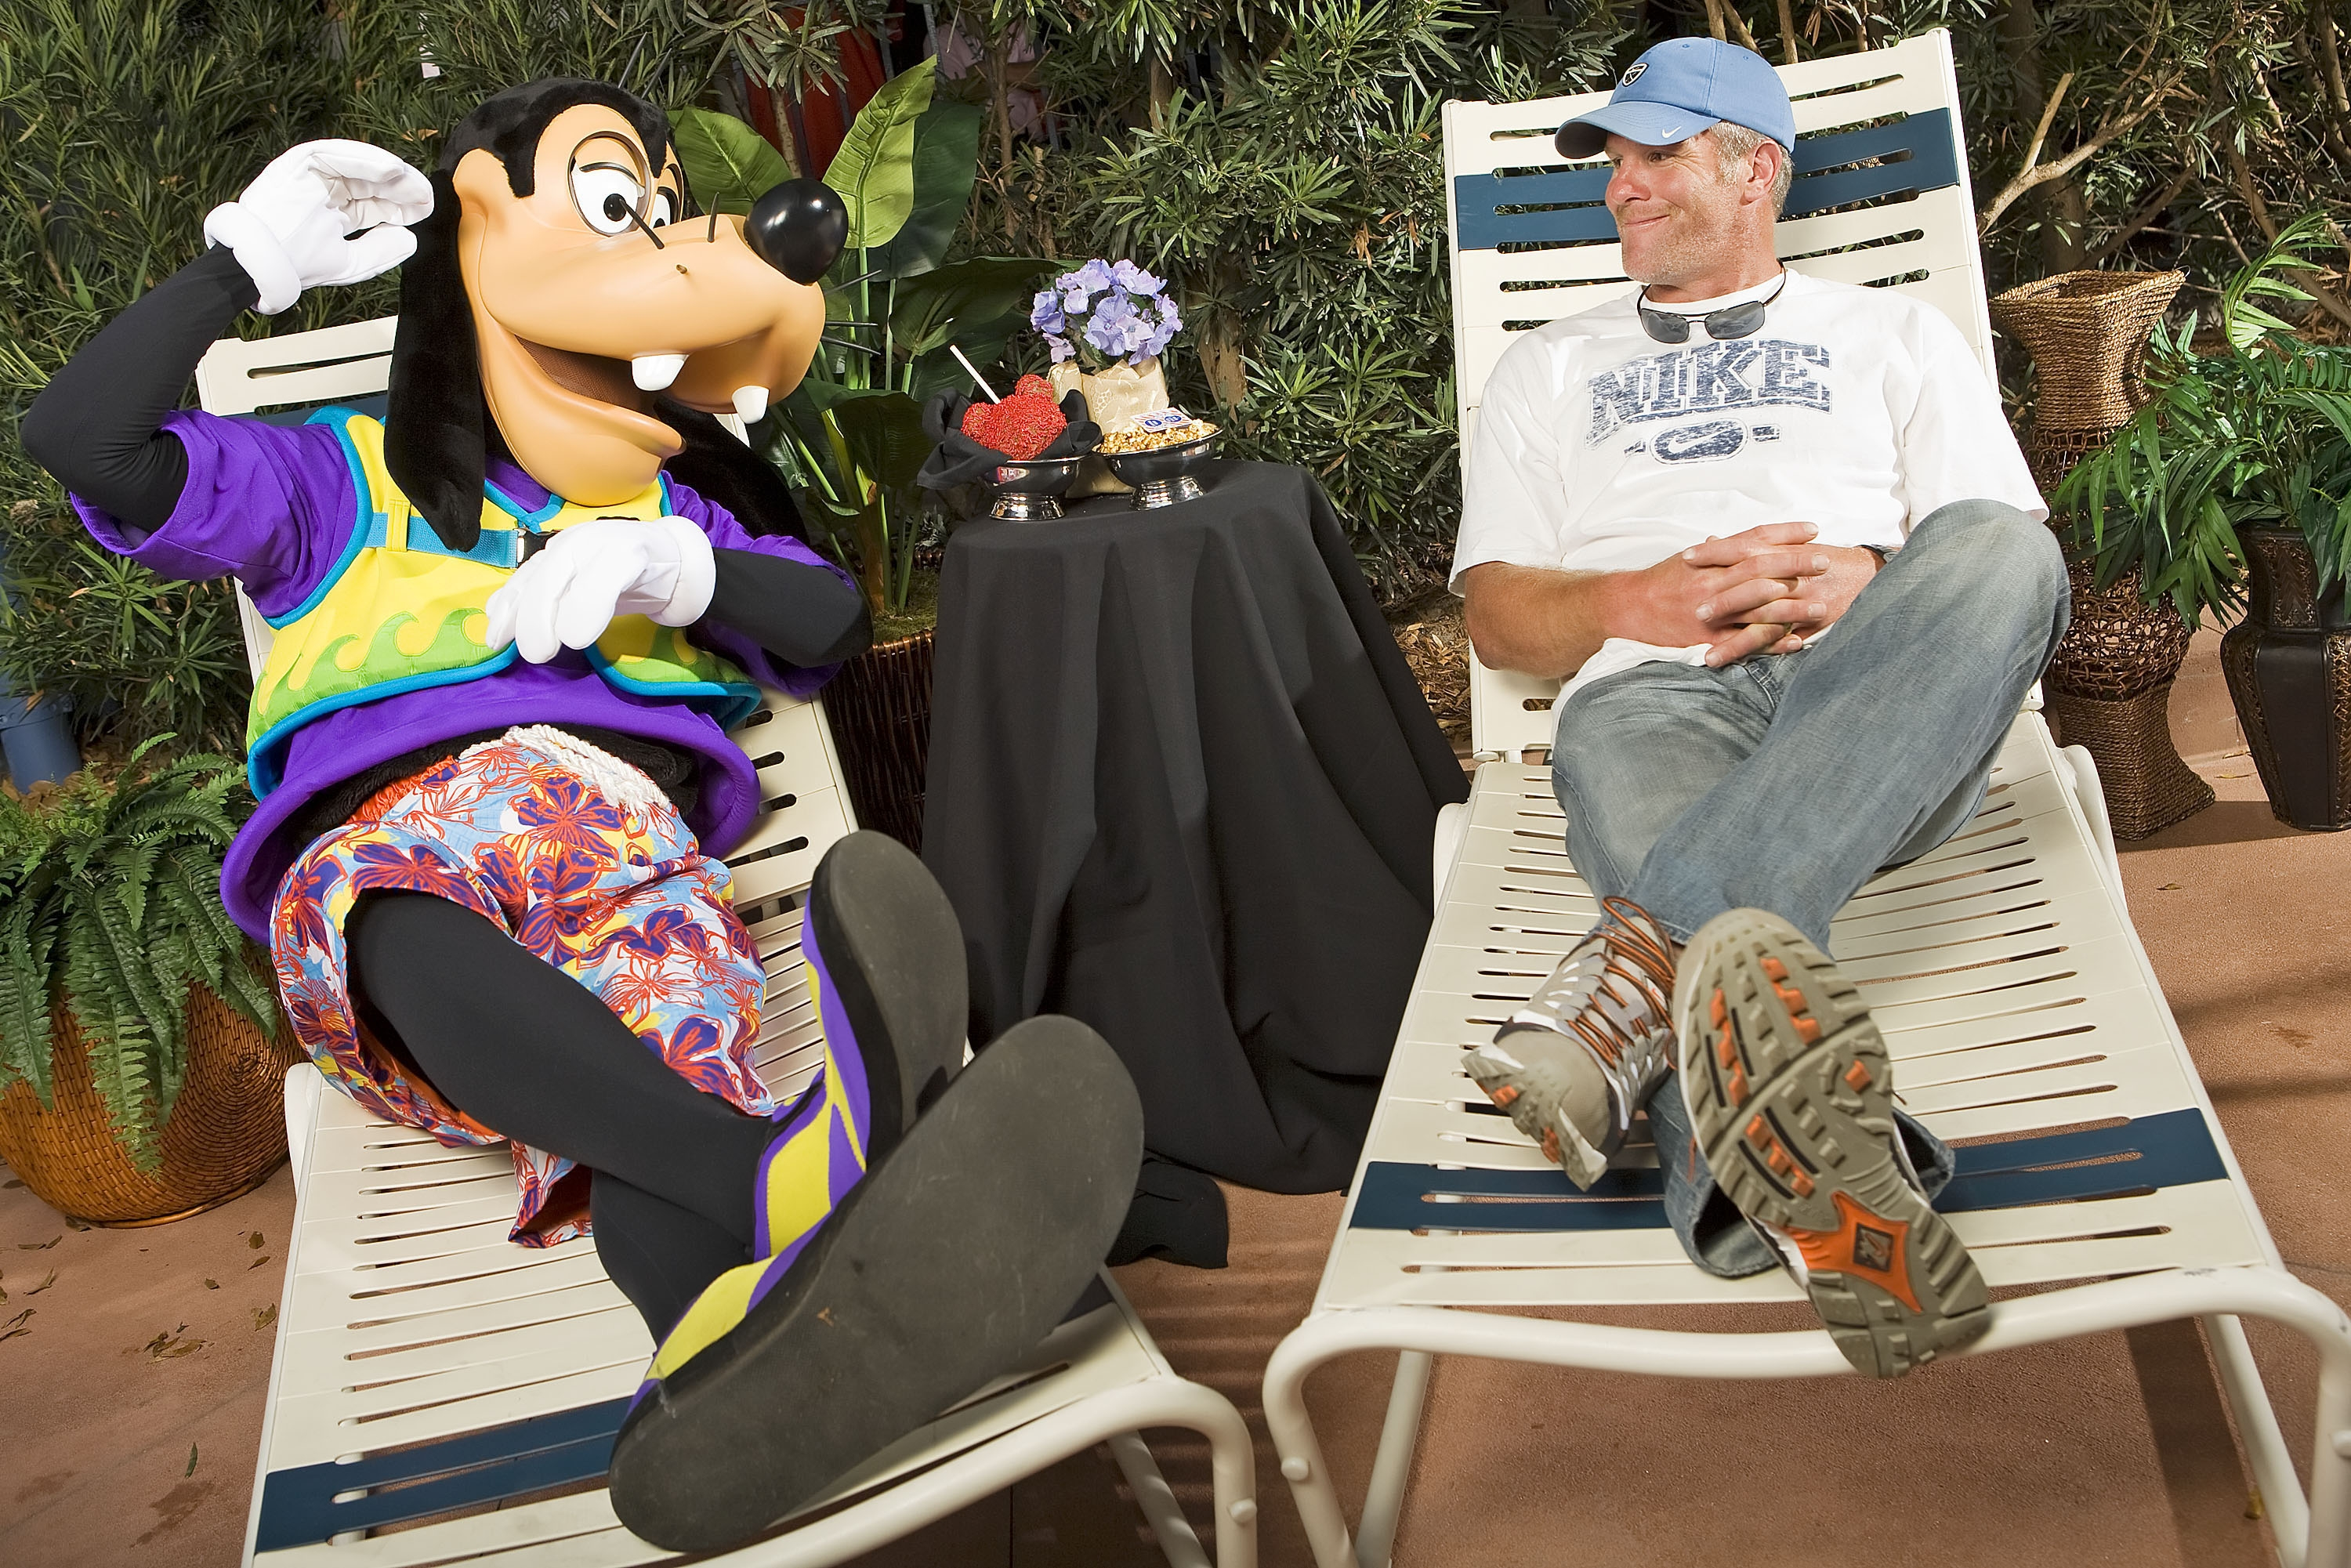 LAKE BUENA VISTA, FL - FEBRUARY 28:  In this handout photo provided by Walt Disney World, in a photo taken February 28, 2009 NFL quarterback Brett Favre lounges with Goofy at Walt Disney World Resort in Lake Buena Vista, Florida.  Favre was appearing at '